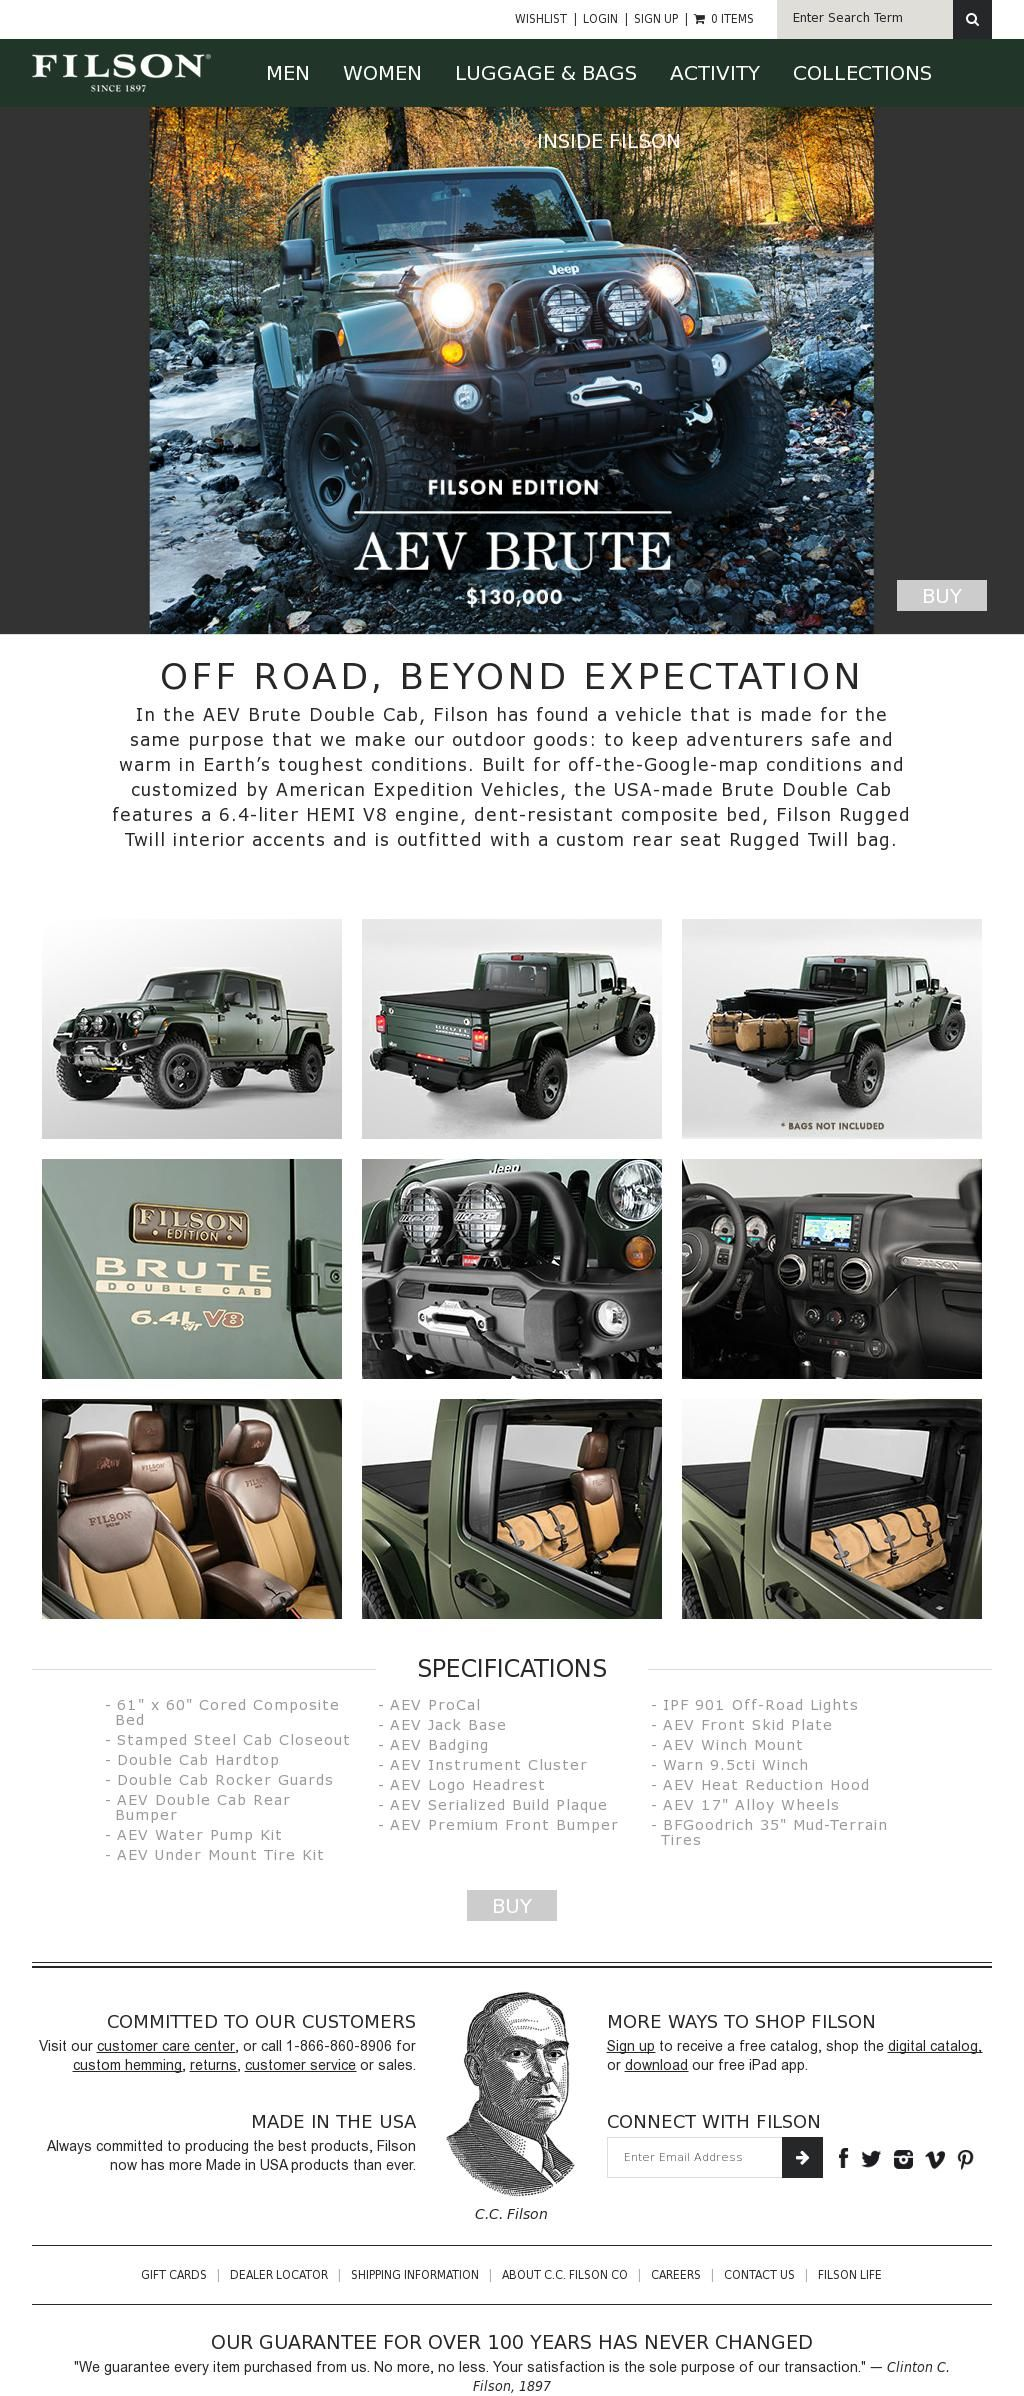 Jeep The Filson Aev Brute Boom Jeep Cars Jeep Brute Willys Jeep